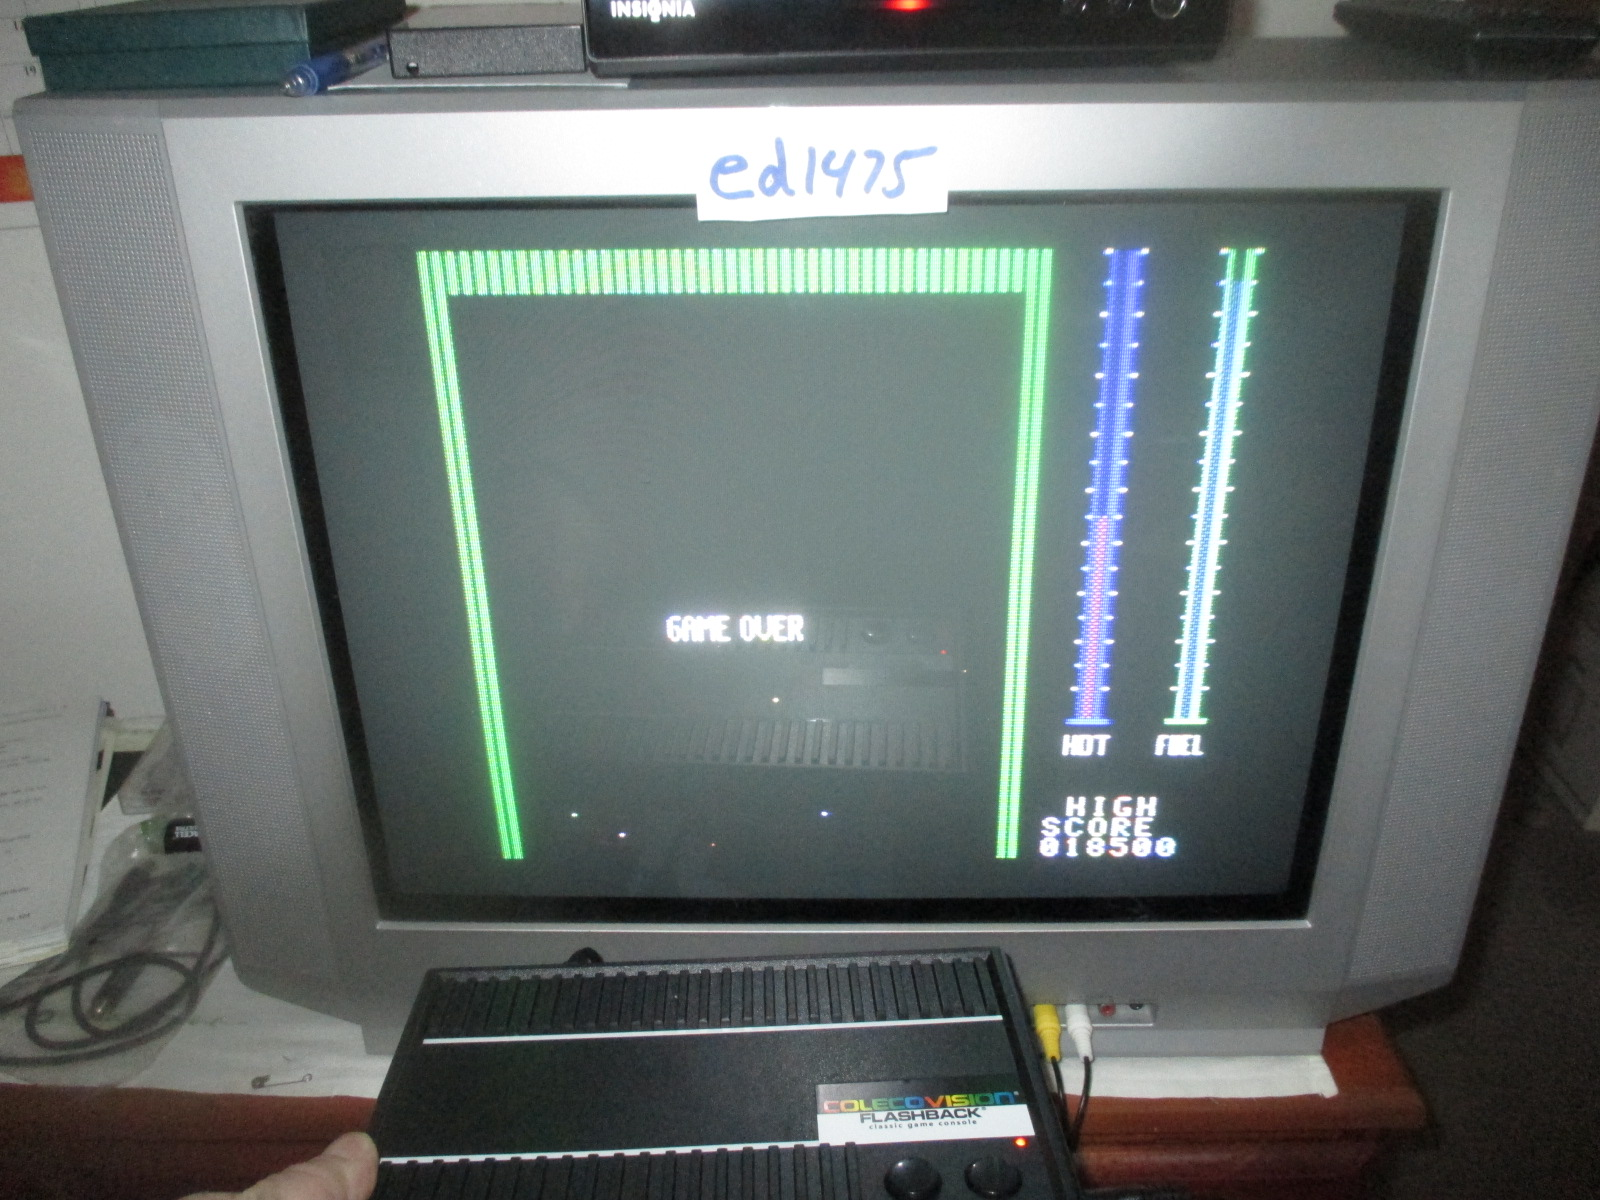 ed1475: Threshold (Colecovision Flashback) 18,500 points on 2014-12-02 19:51:40